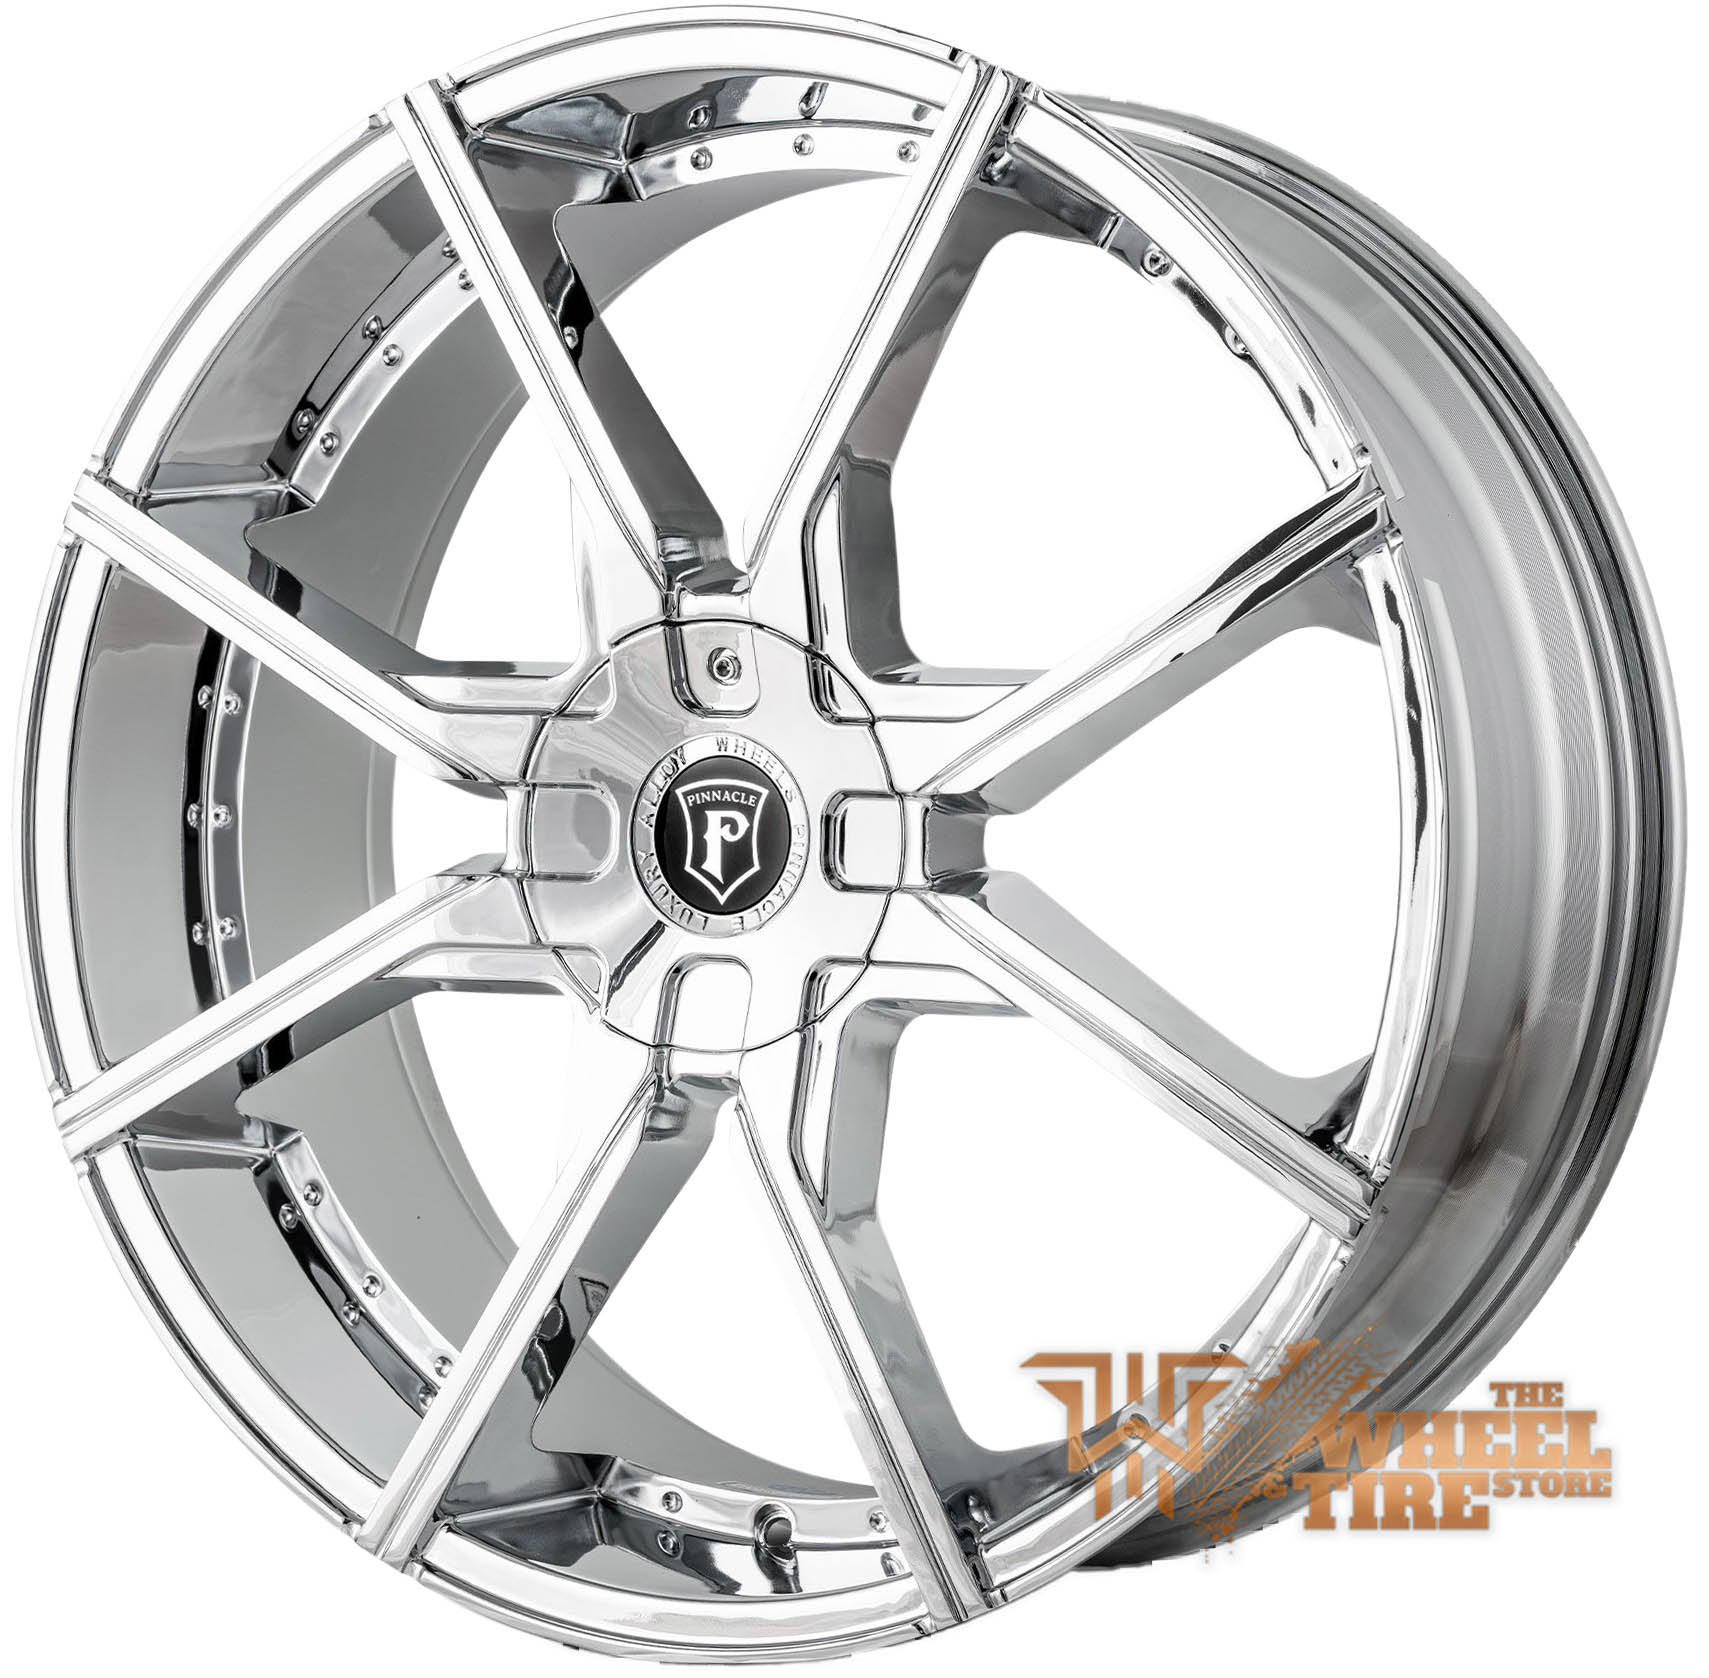 Pinnacle P96 'Hype' Wheel in Chrome (Set of 4)